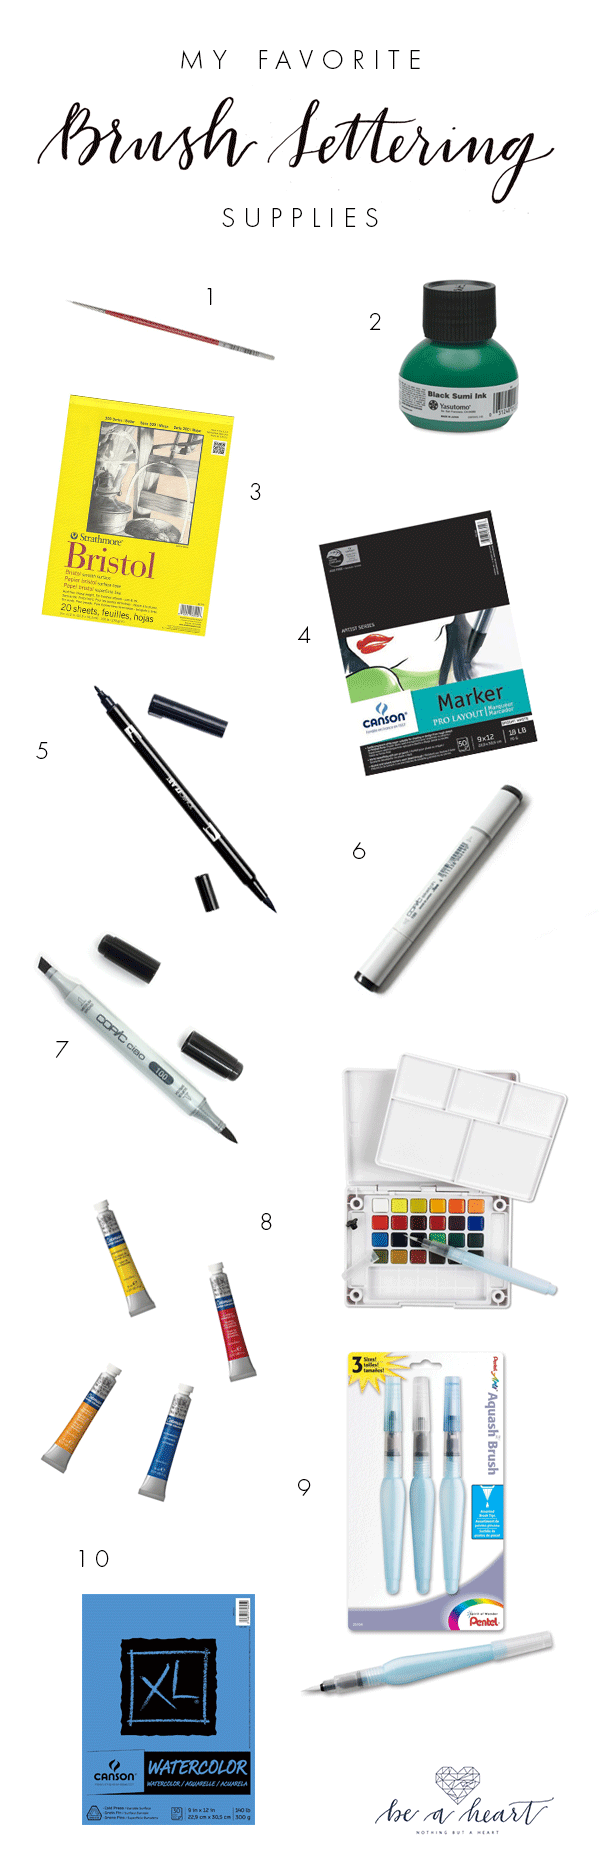 Basic Brush Lettering Supplies.